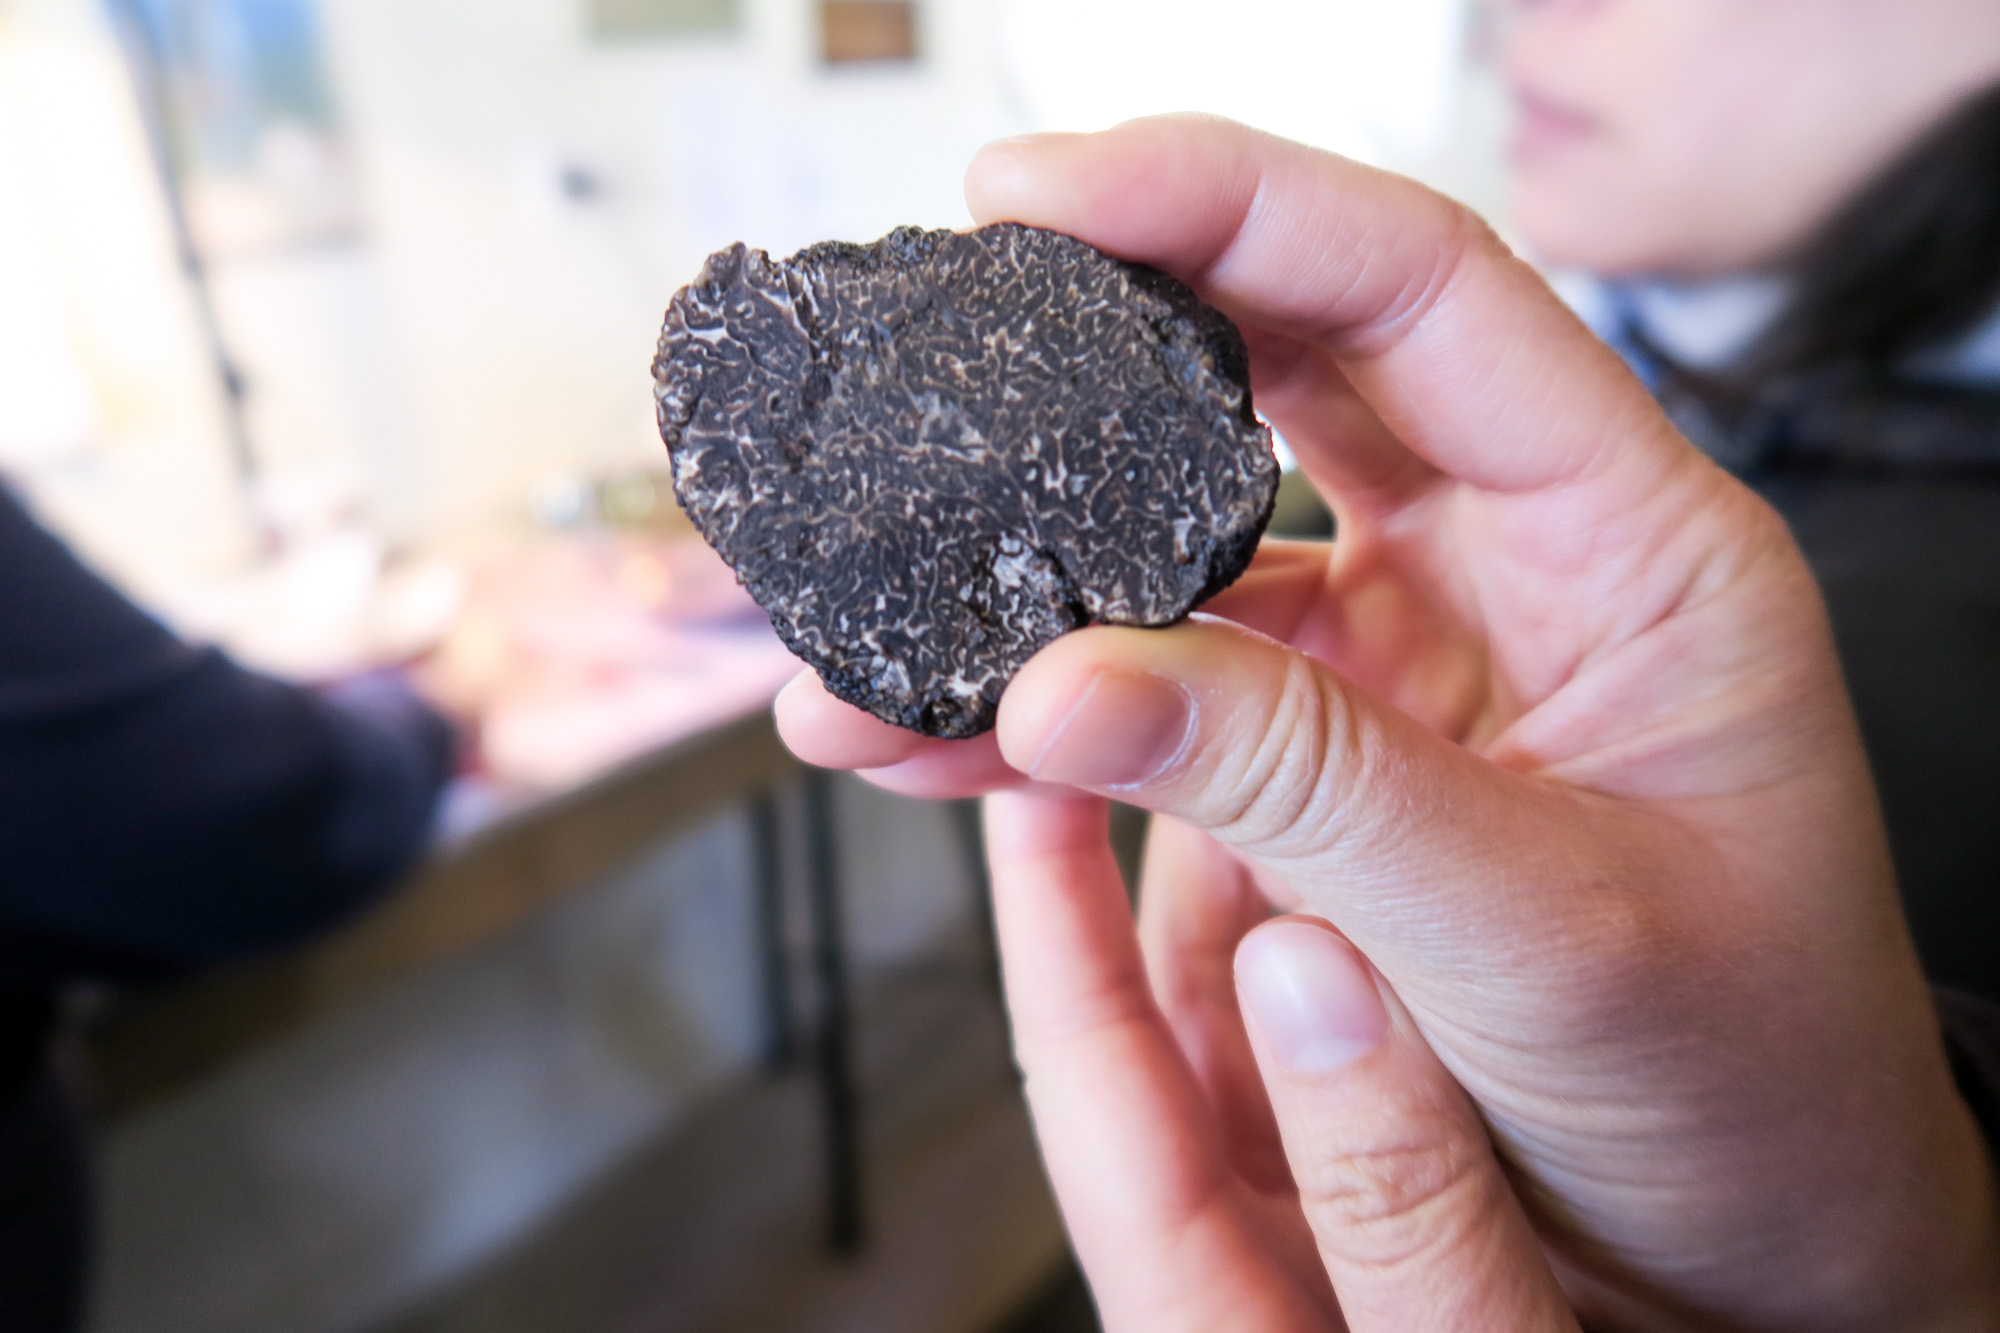 Canberra Truffle Festival 2016